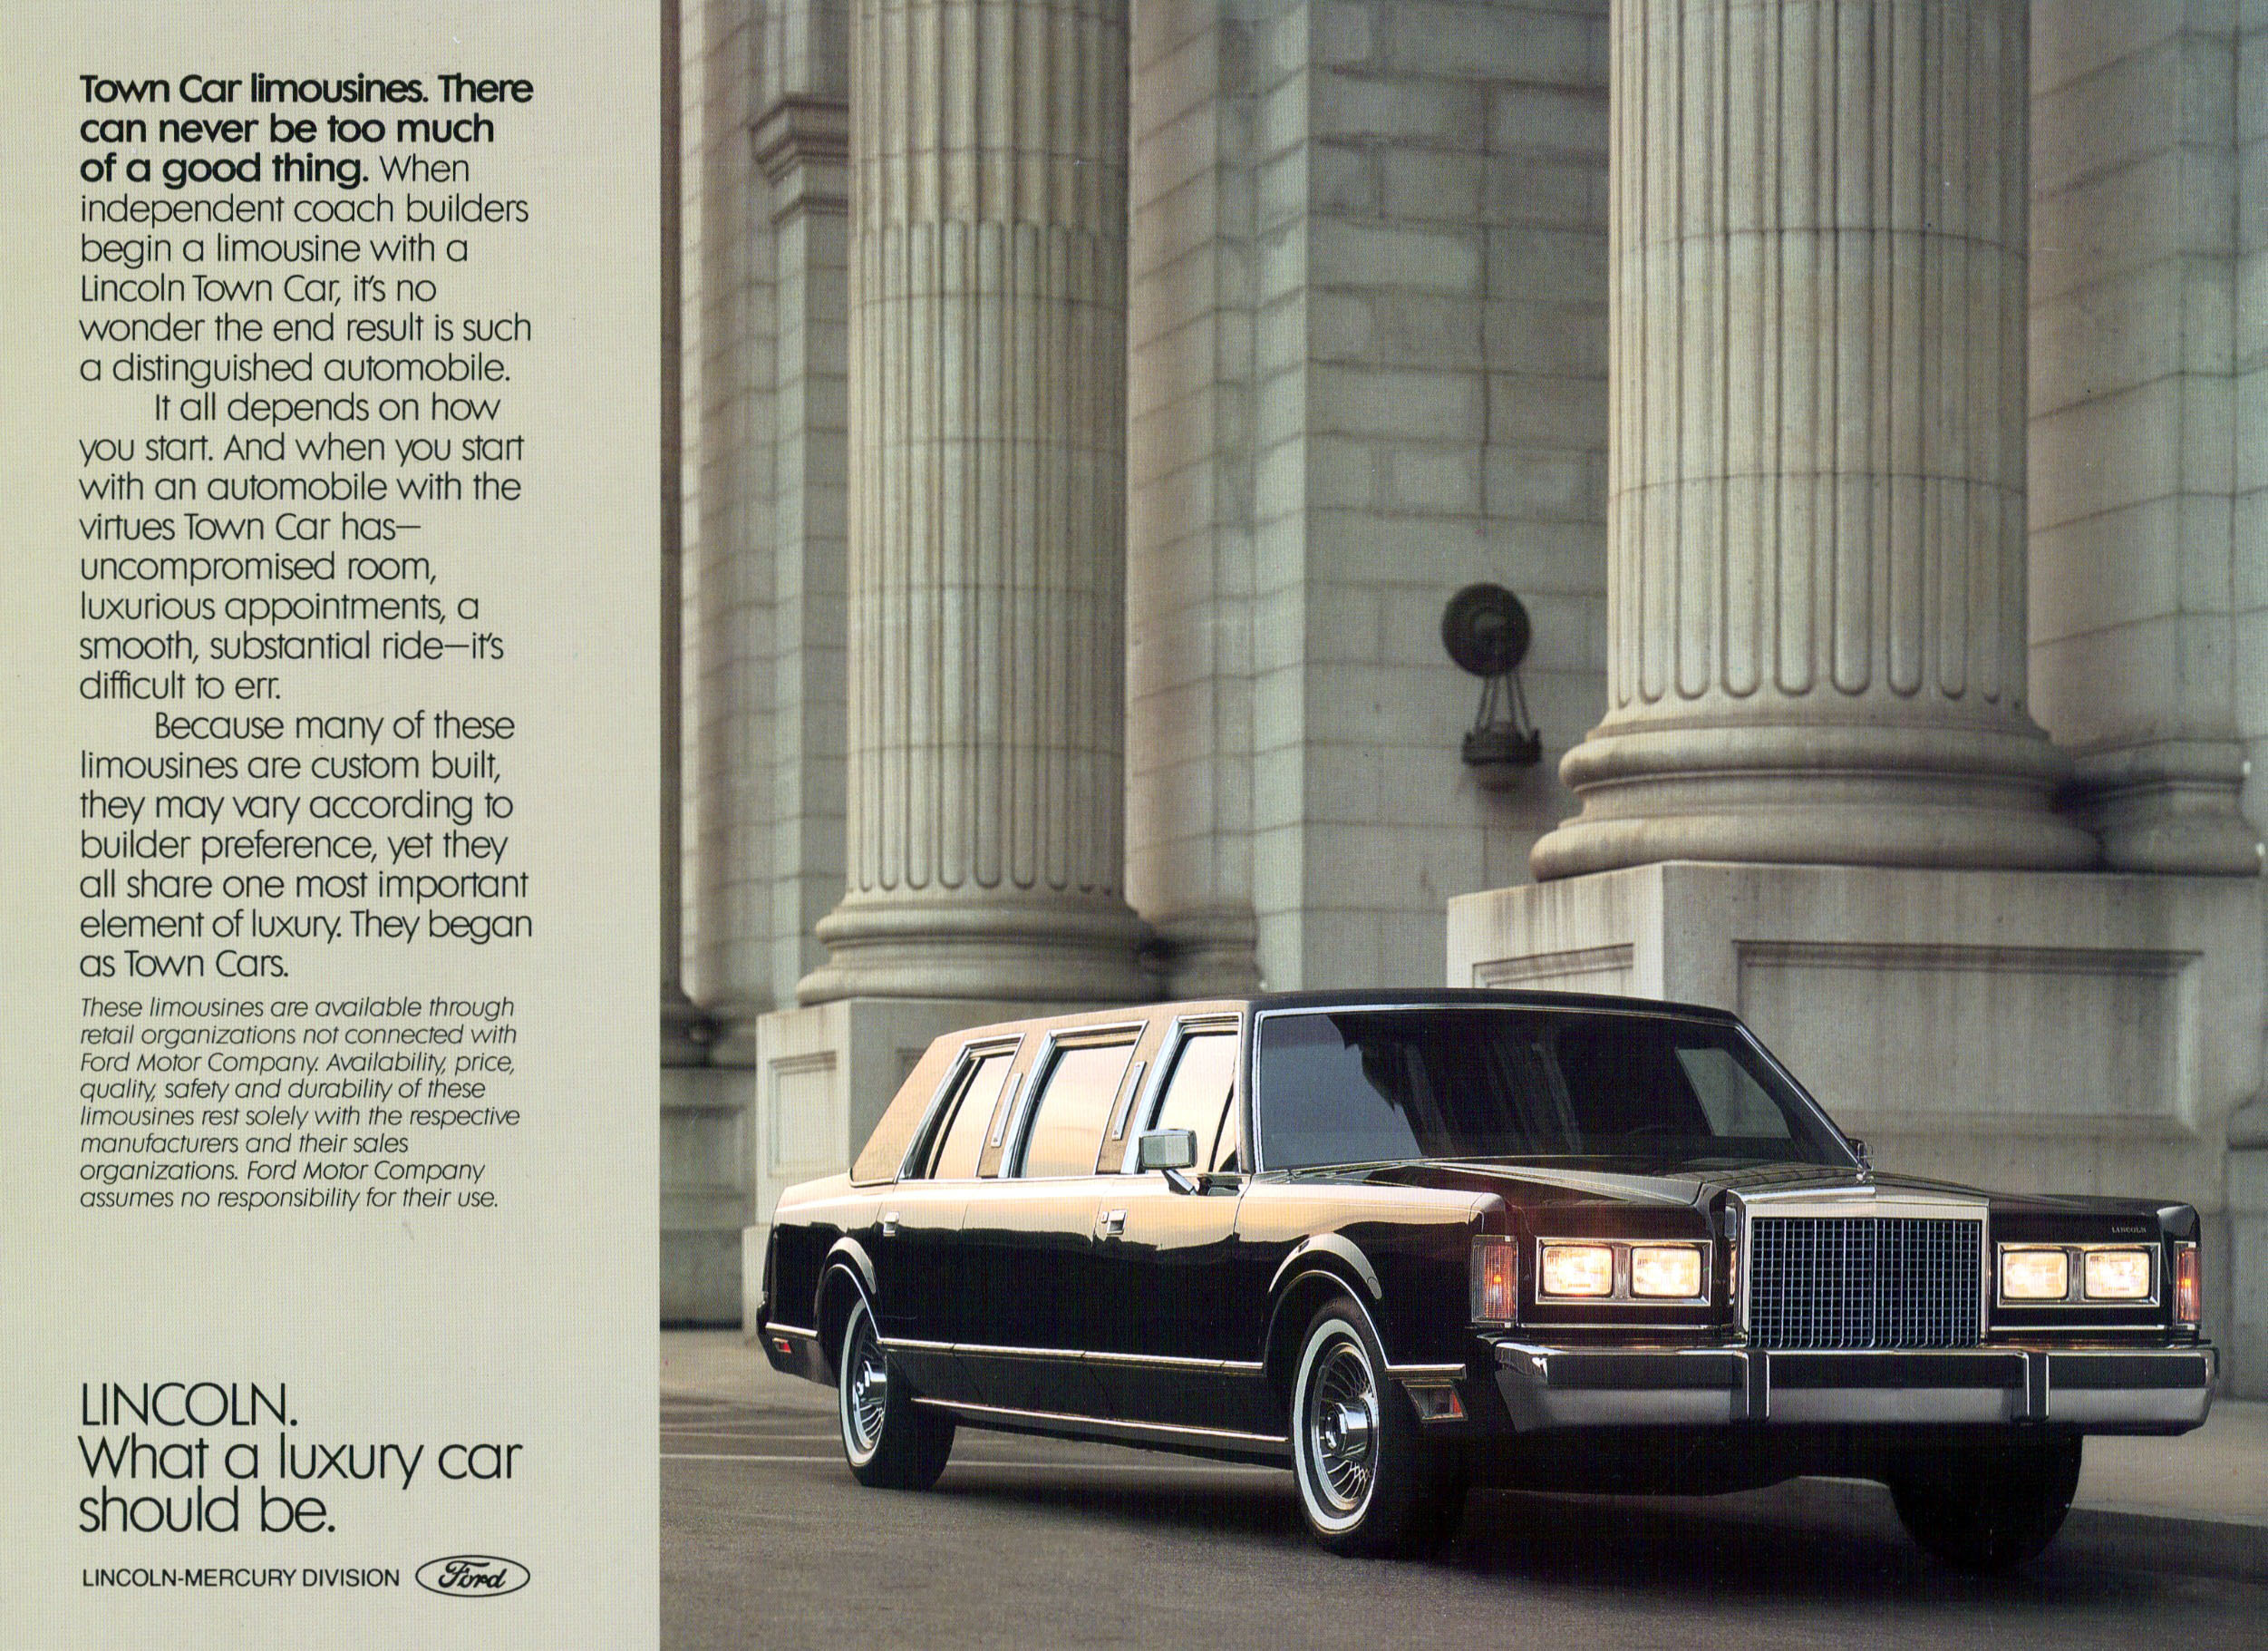 1987 Lincoln Town Car Limousine Ad